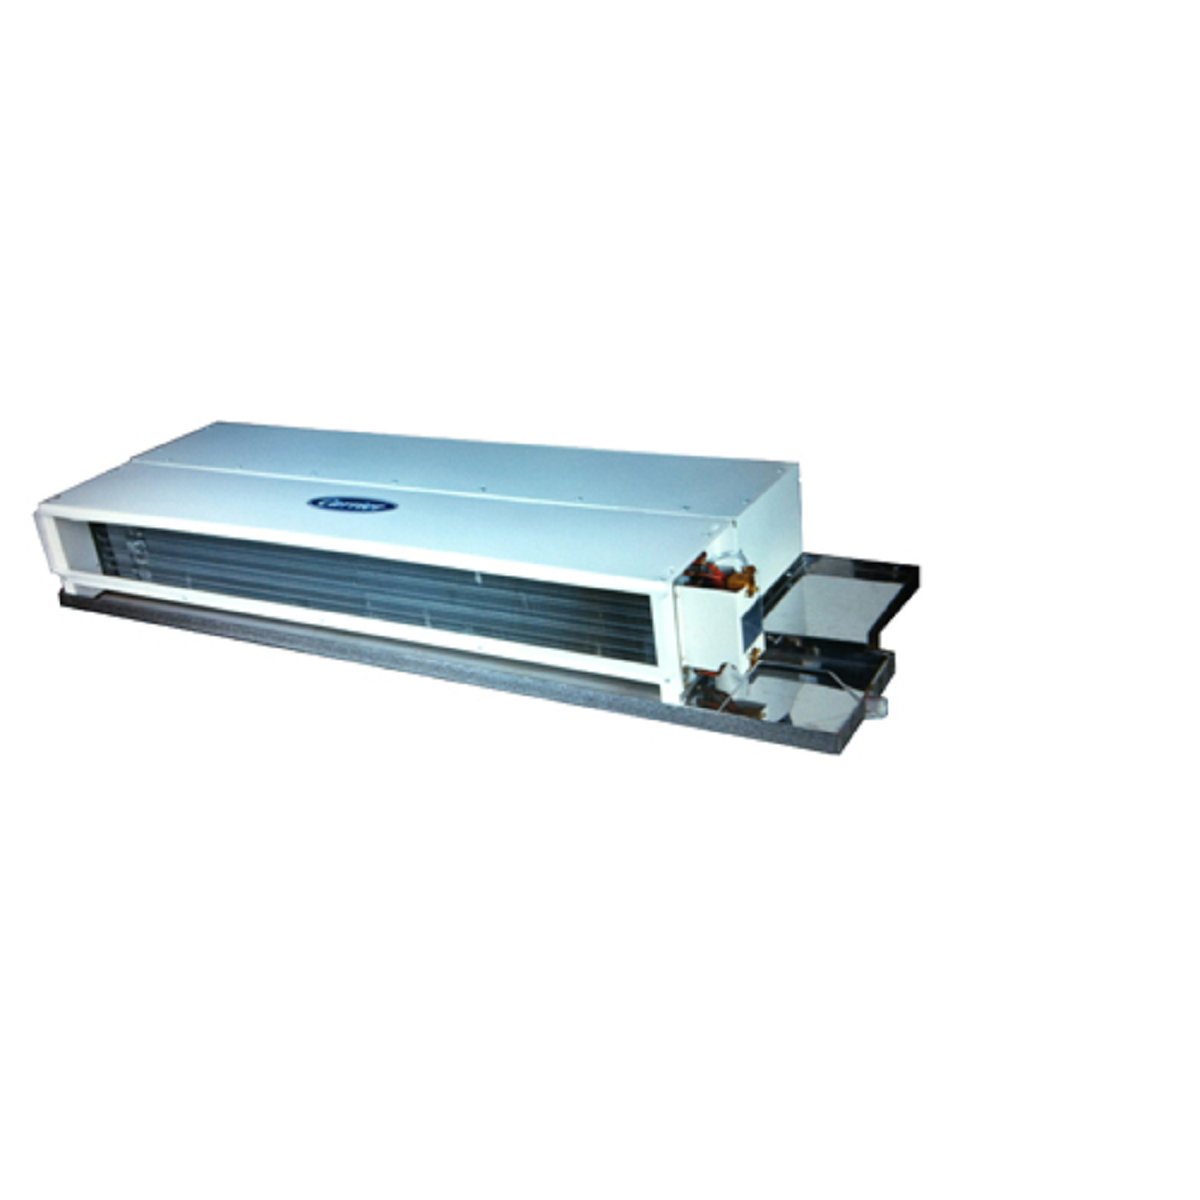 Horizontal Concealed Fan Coil Unit Hot And Cool Water Fan Coil Unit In 2020 Fan Coil Unit Horizontal Coil